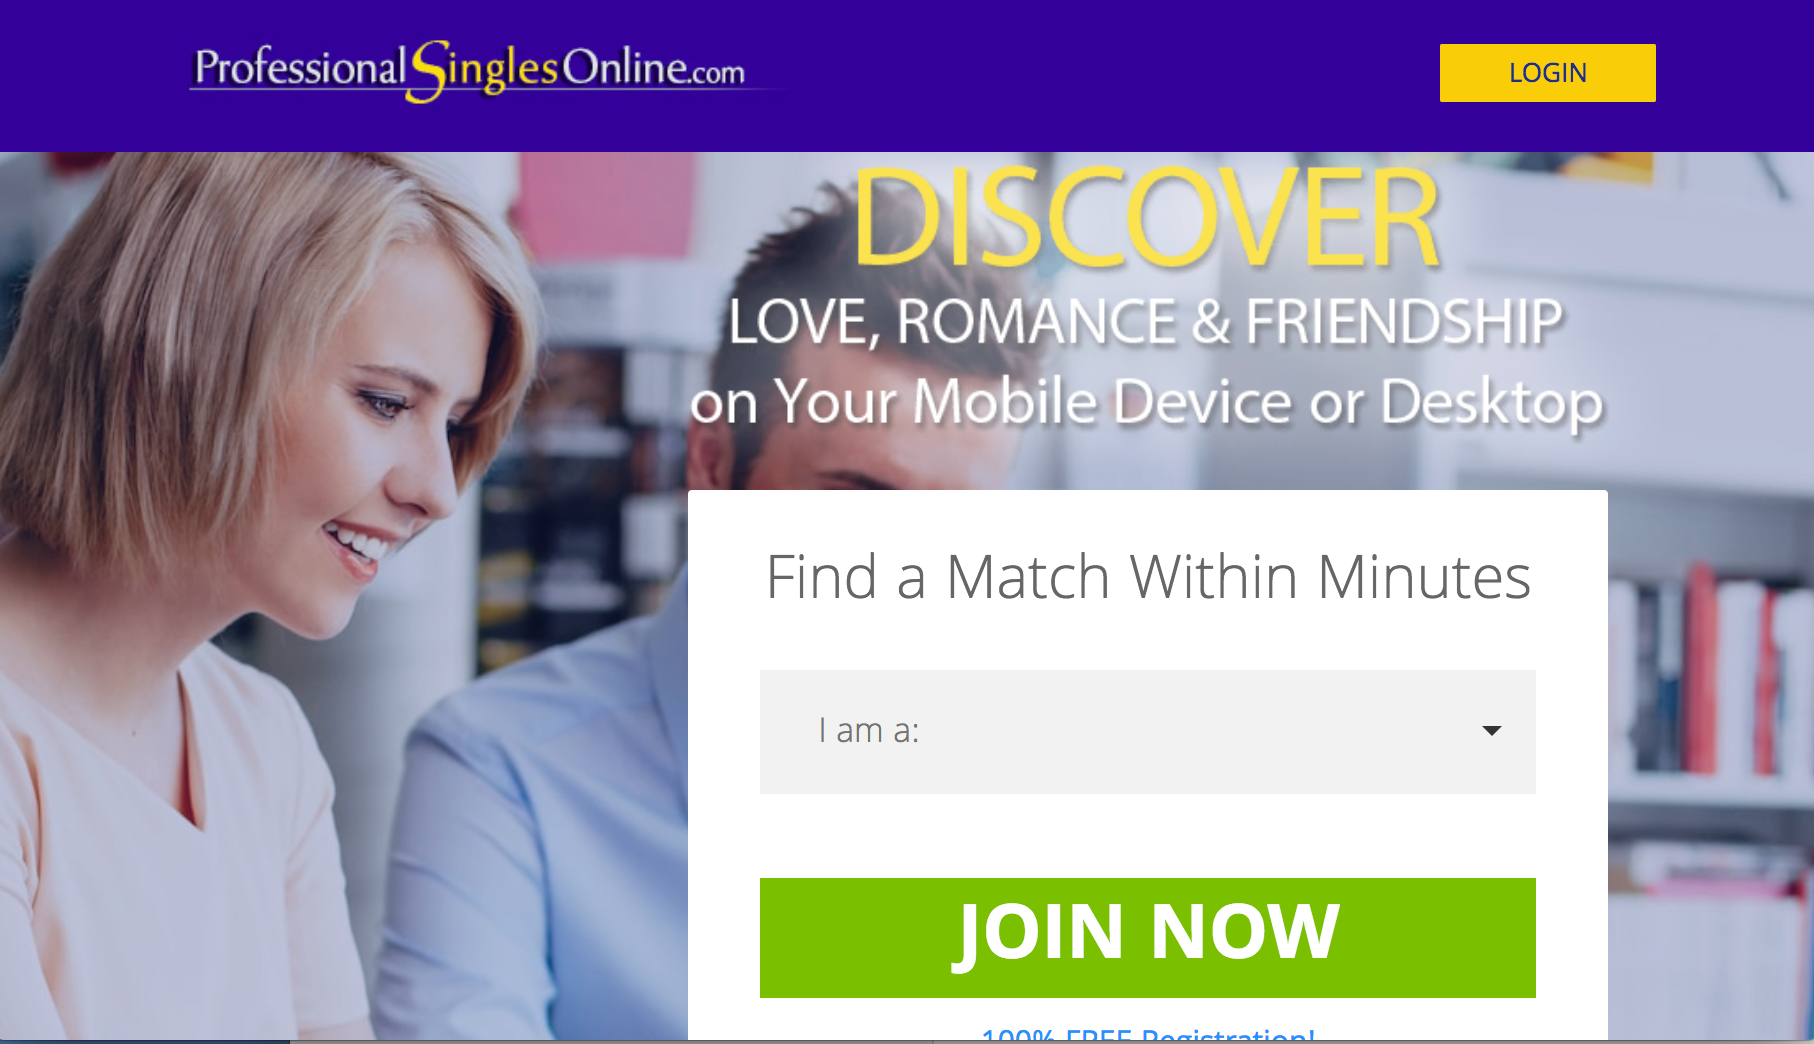 Professional Singles Online